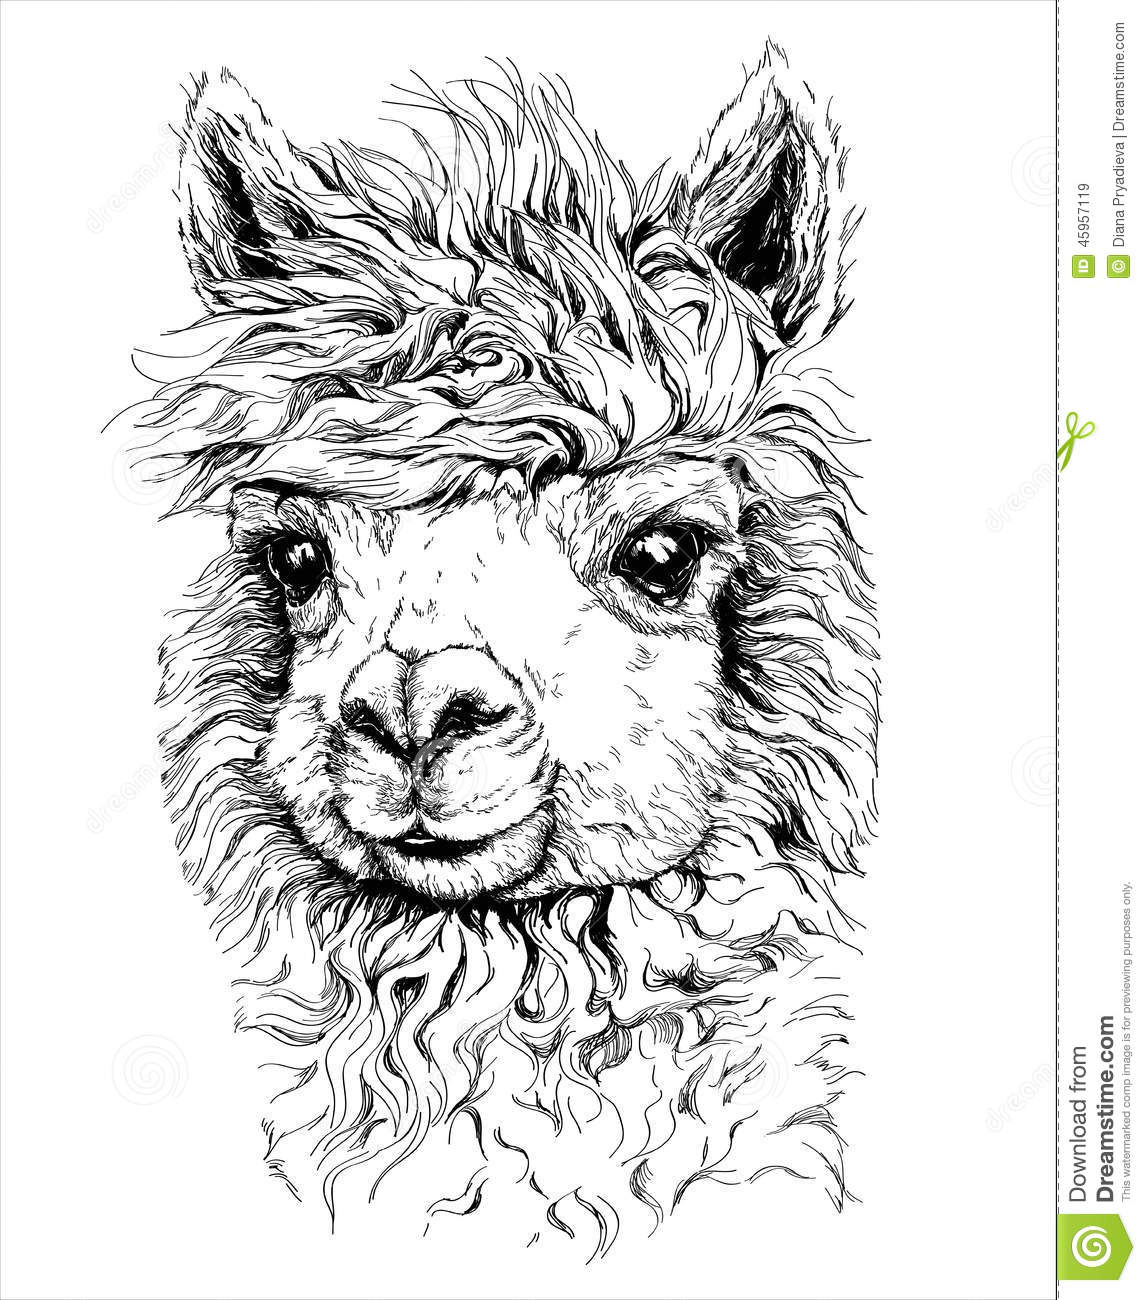 Realistic sketch of LAMA Alpaca, black and white drawing, isolated on white